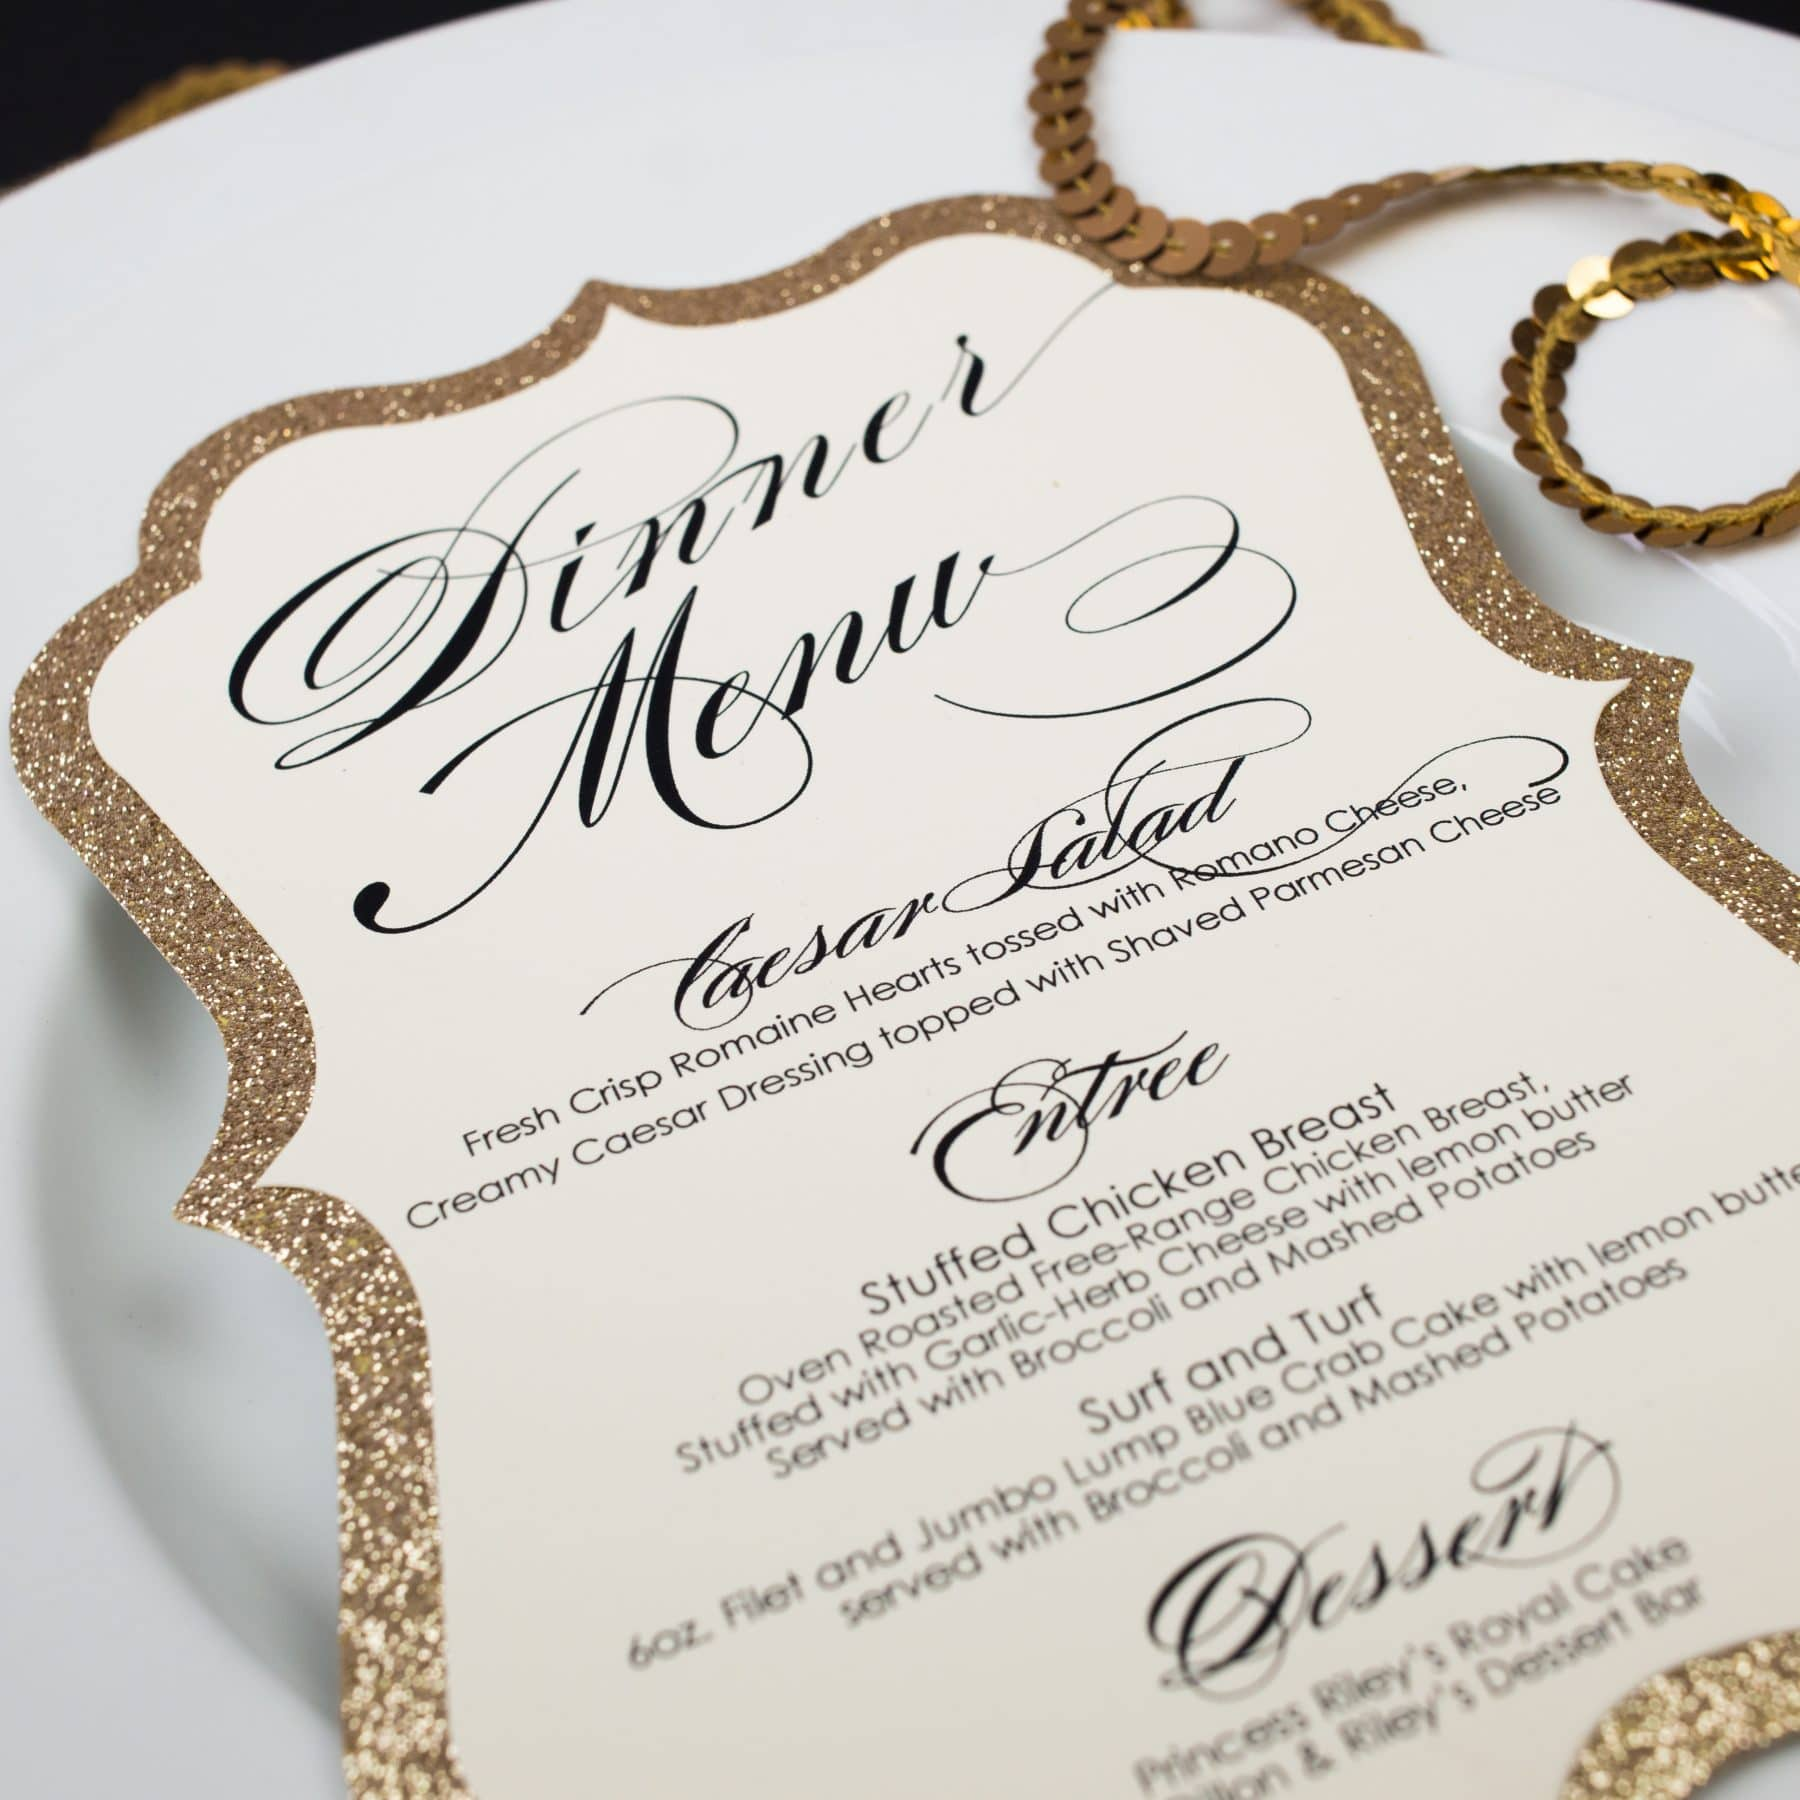 Your wedding menu is also an important factor to consider to wed on budget.